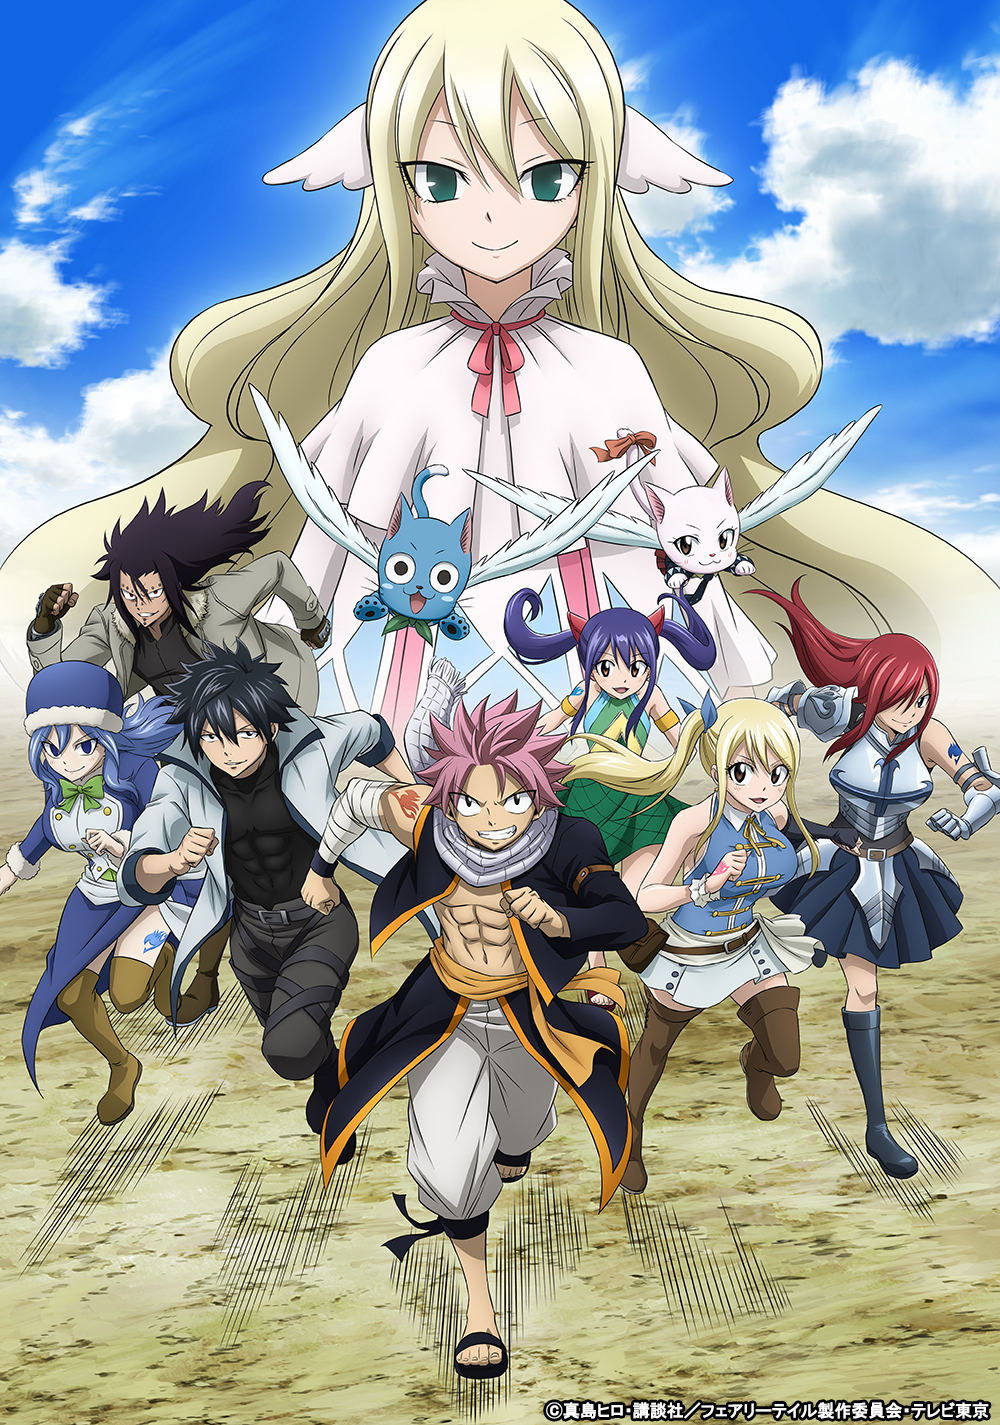 New Fairy Tail Opening Theme No Limit To Be Performed By